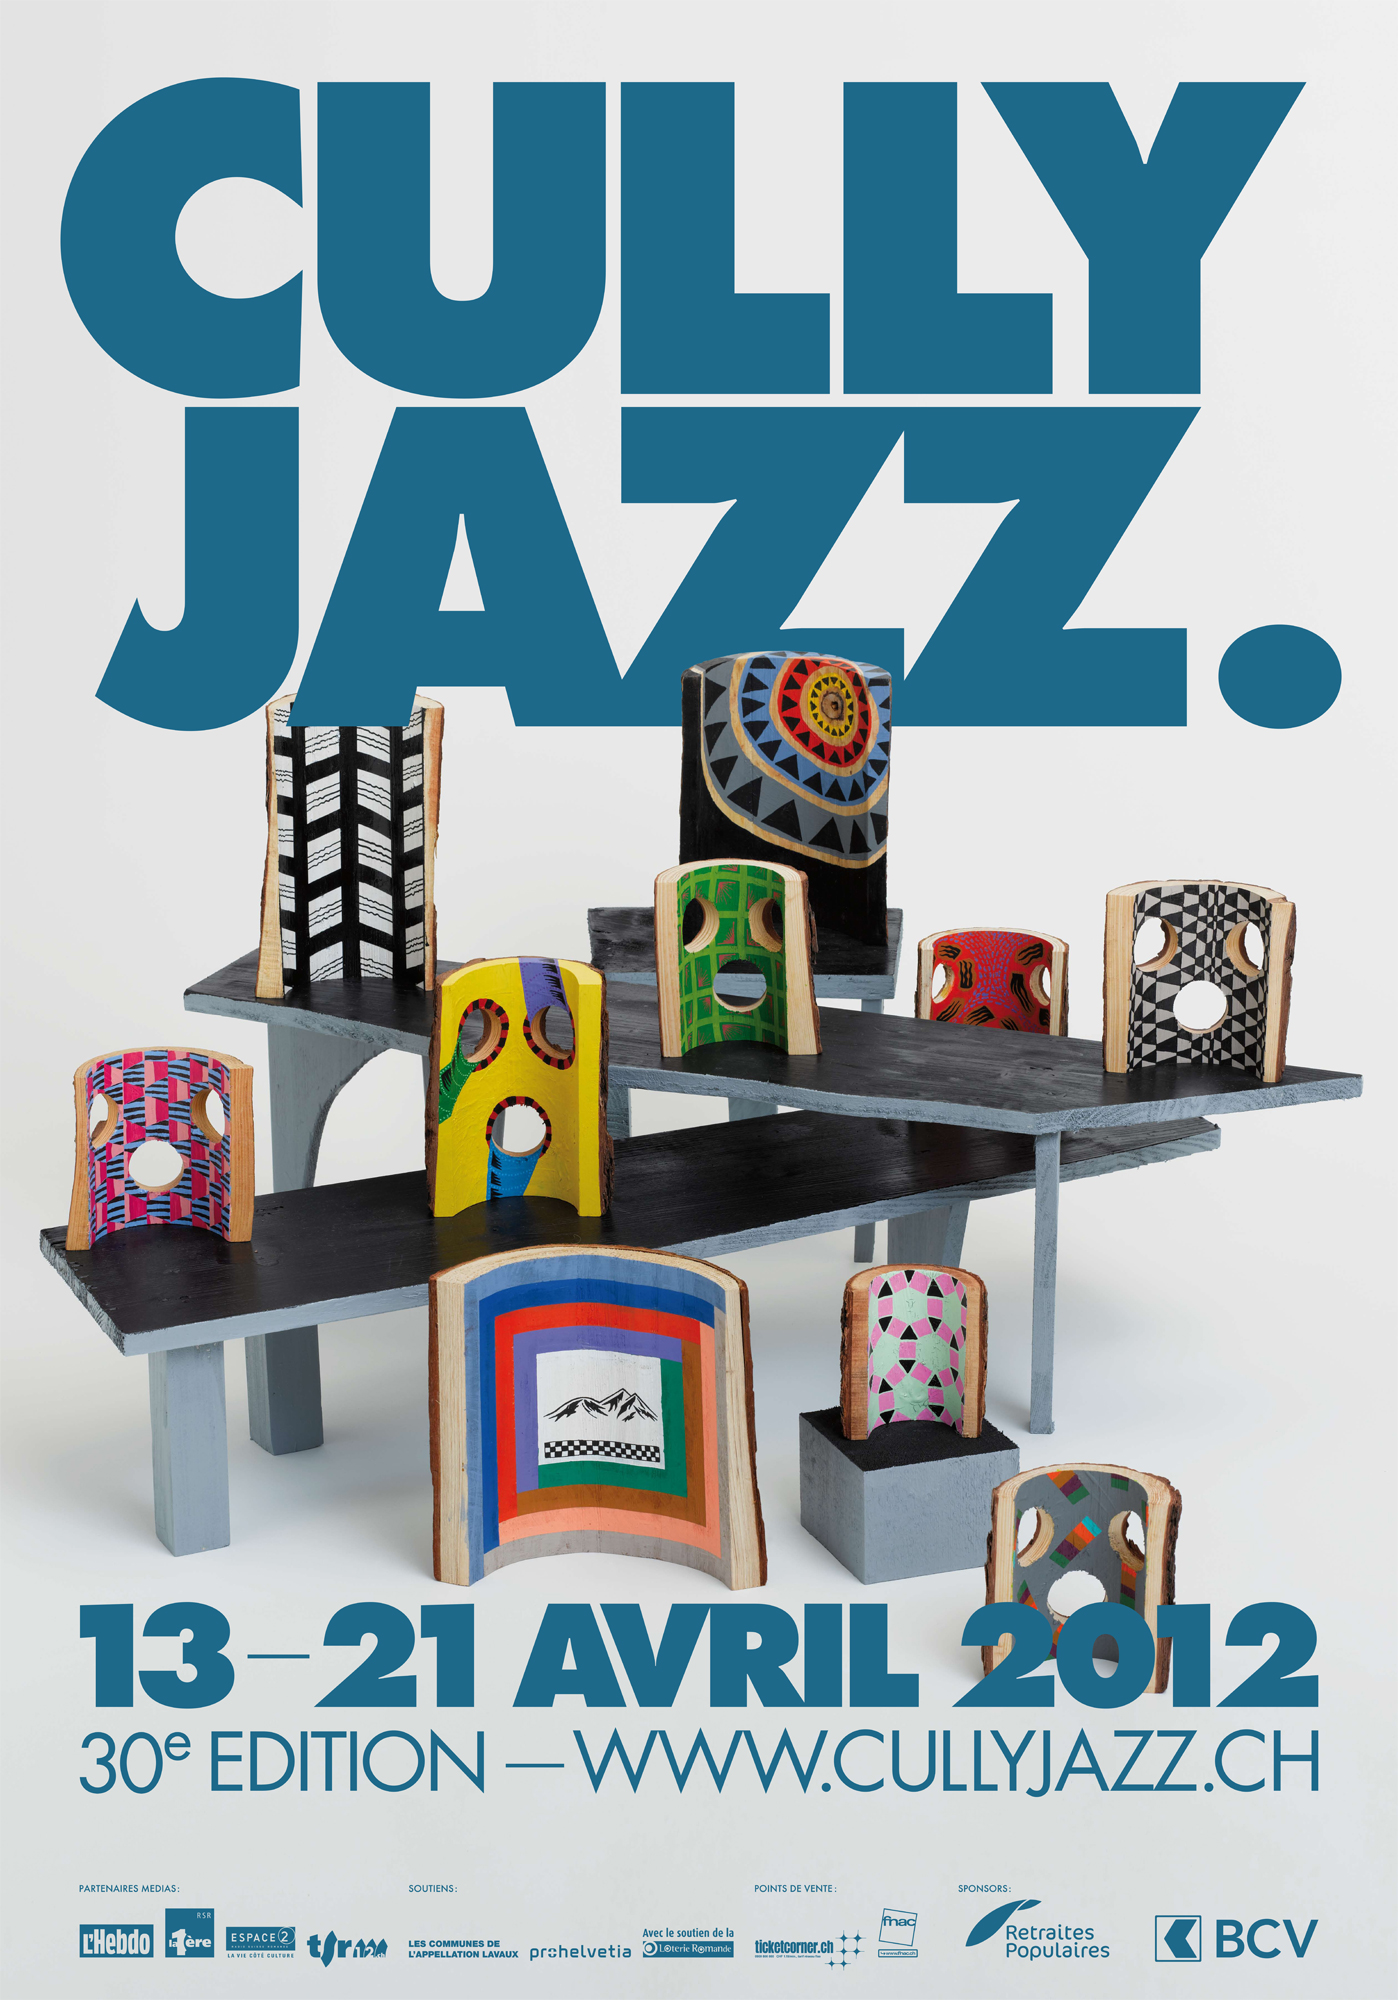 L'affiche de la 30e édition du Cully Jazz.